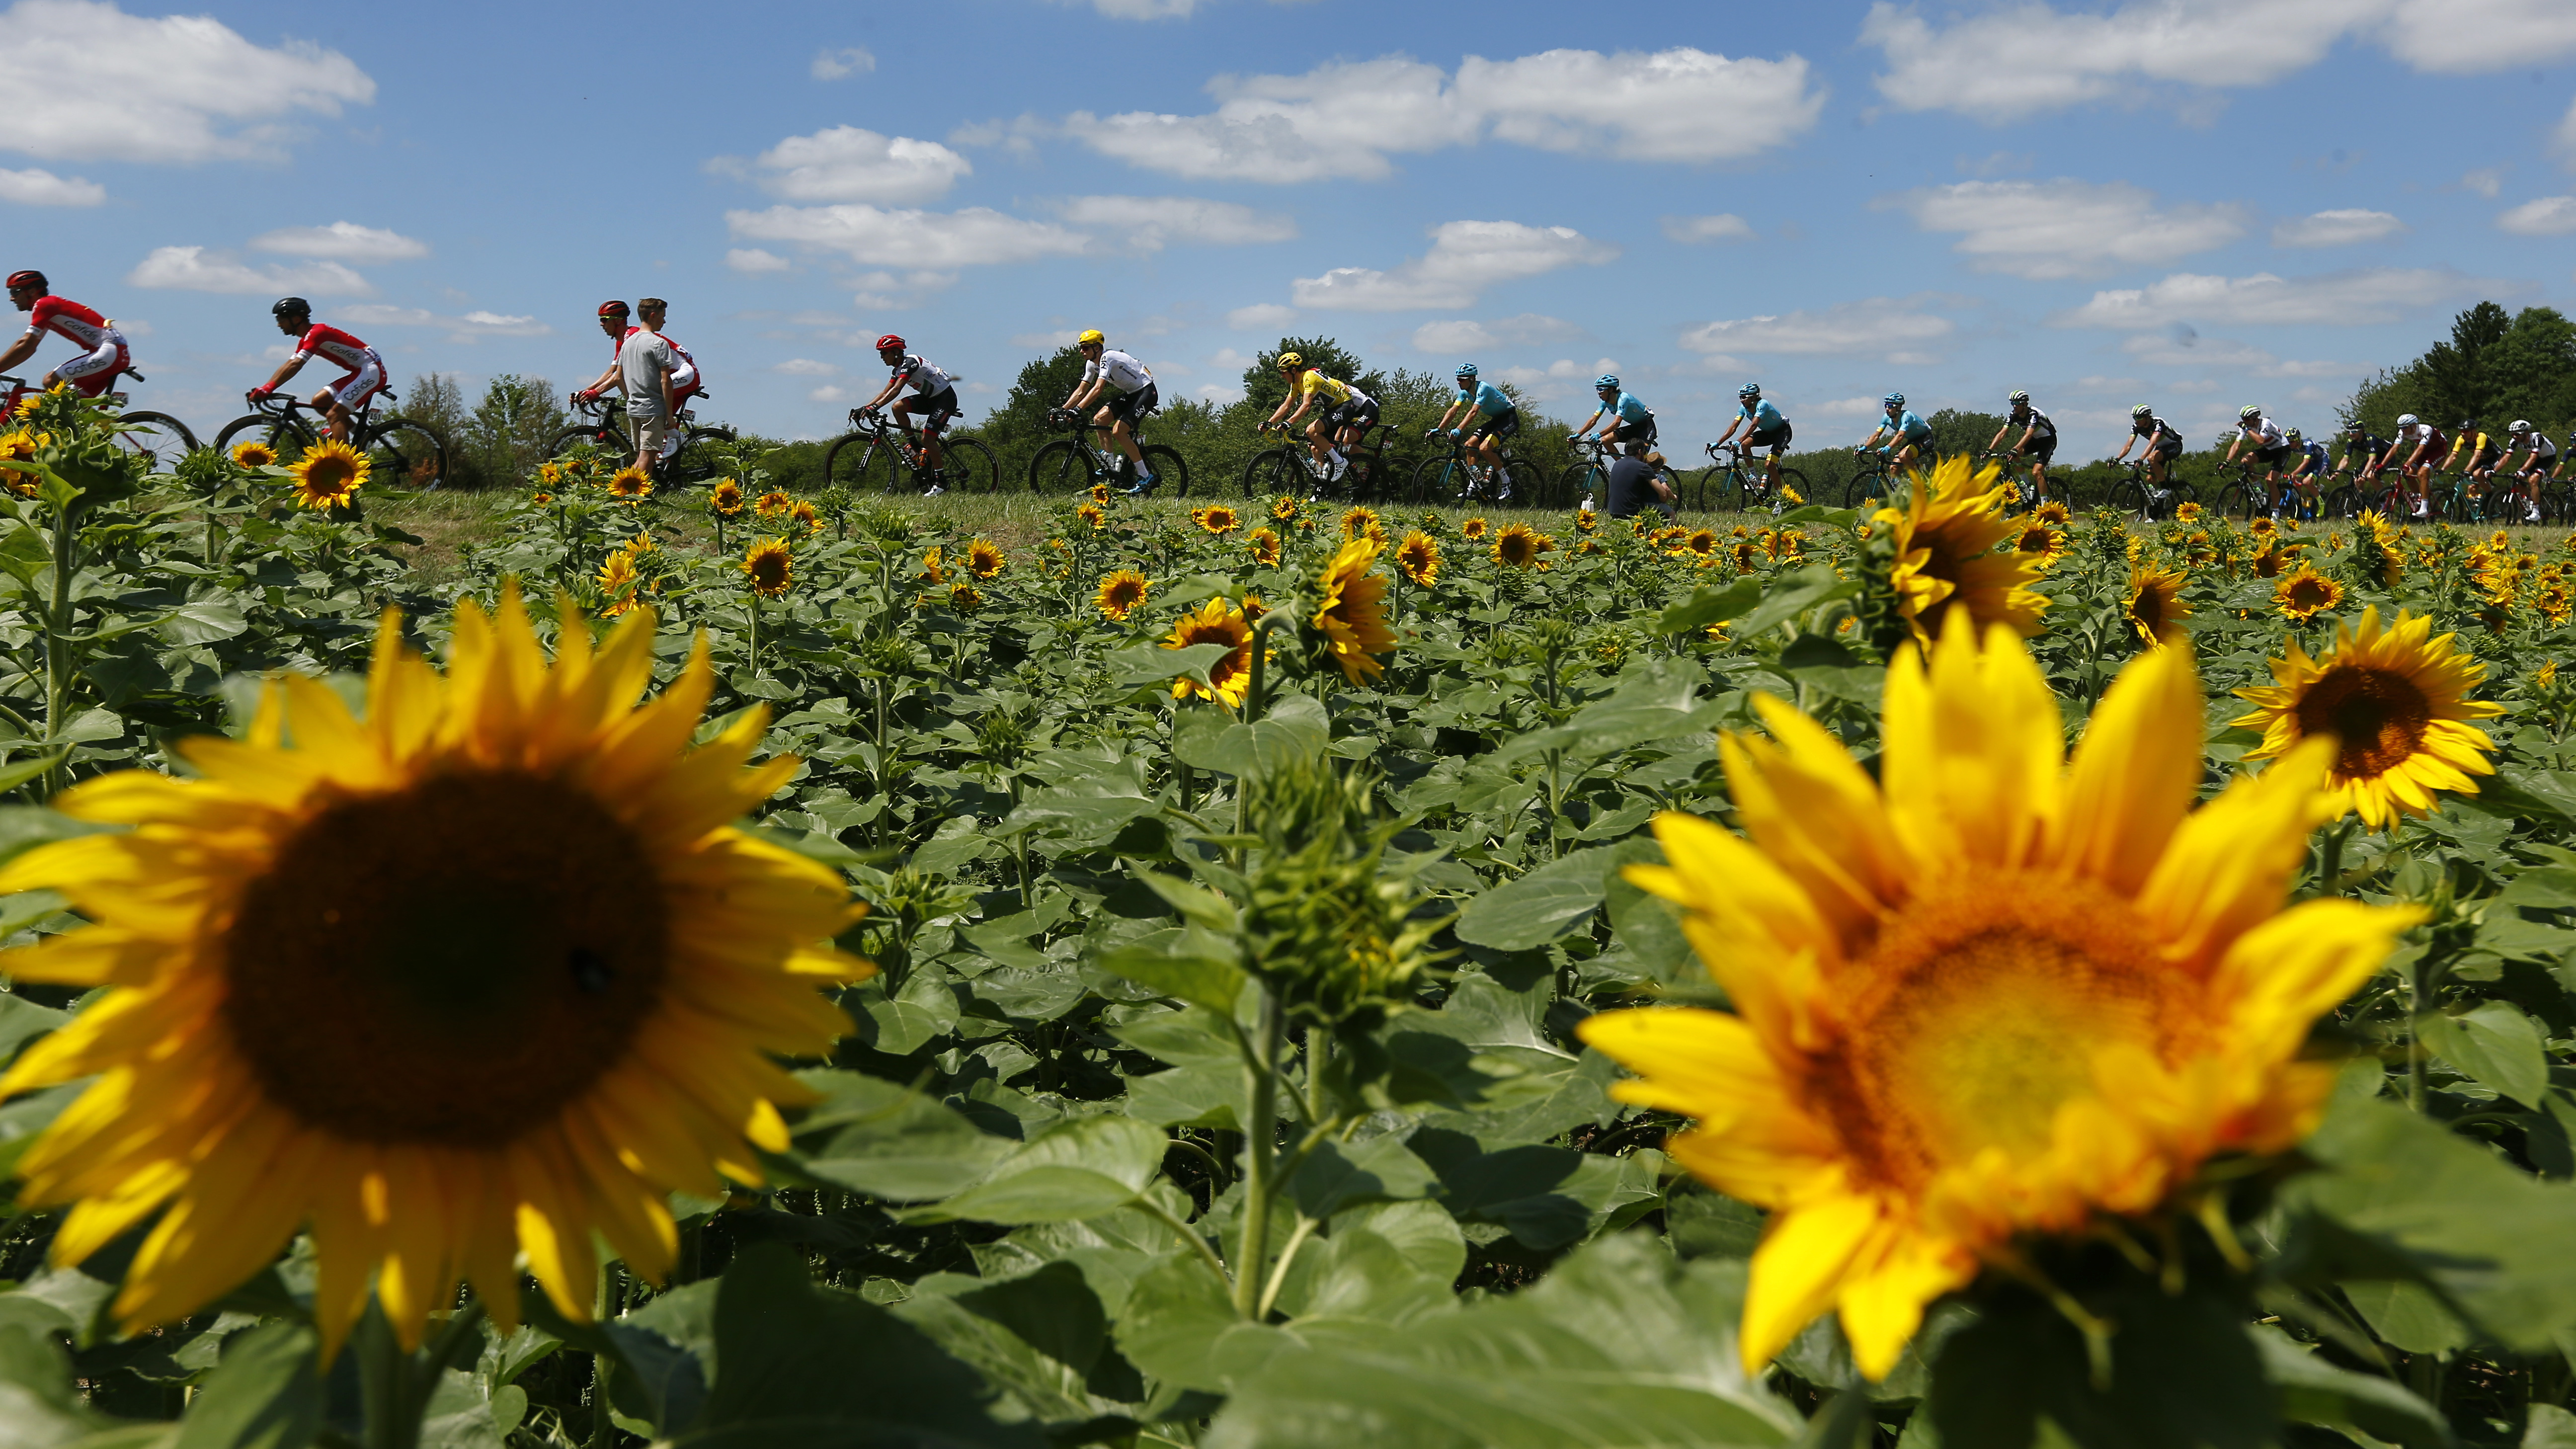 The pack with Britain's Geraint Thomas, wearing the overall leader's yellow jersey, center, passes a field of sunflowers during the fourth stage of the Tour de France cycling race over 207.5 kilometers (129 miles) with start in Mondorf-les-Bains, Luxembourg, and finish in Vittel, France, Tuesday, July 4, 2017. (AP Photo/Peter Dejong)